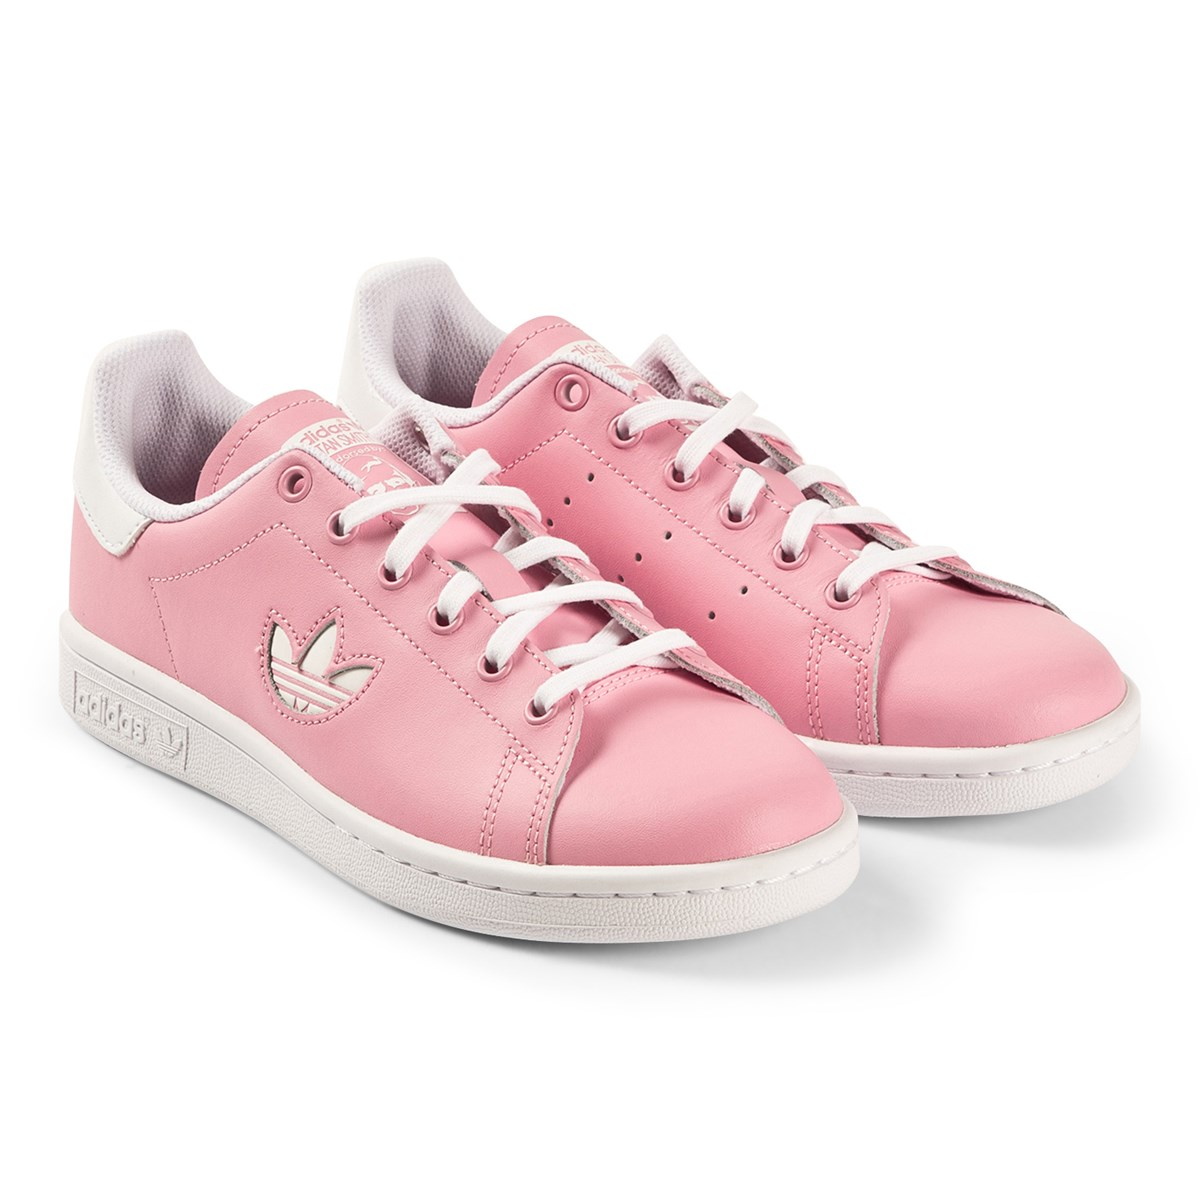 outlet store ac4cb 9aeb3 adidas Originals - Stan Smith Sneakers Pink - Babyshop.com